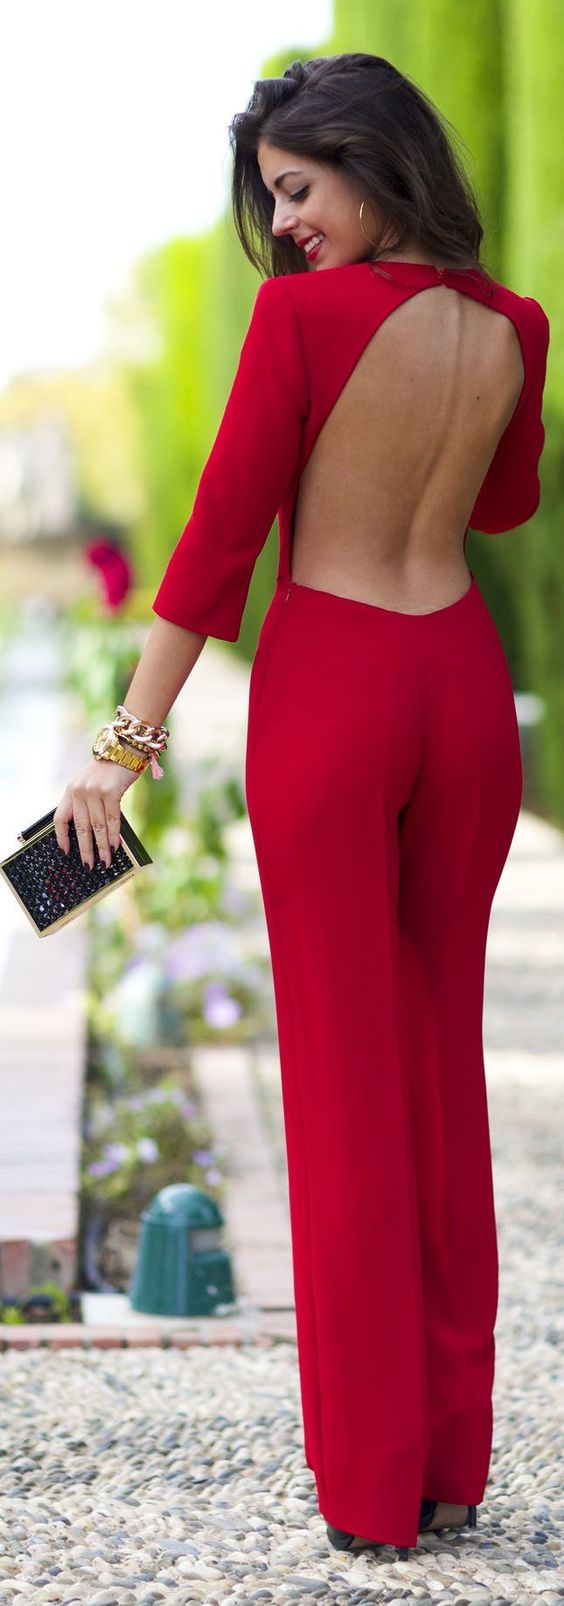 Red haute. ~ 60 Great Winter Outfits On The Street - Style Estate -: